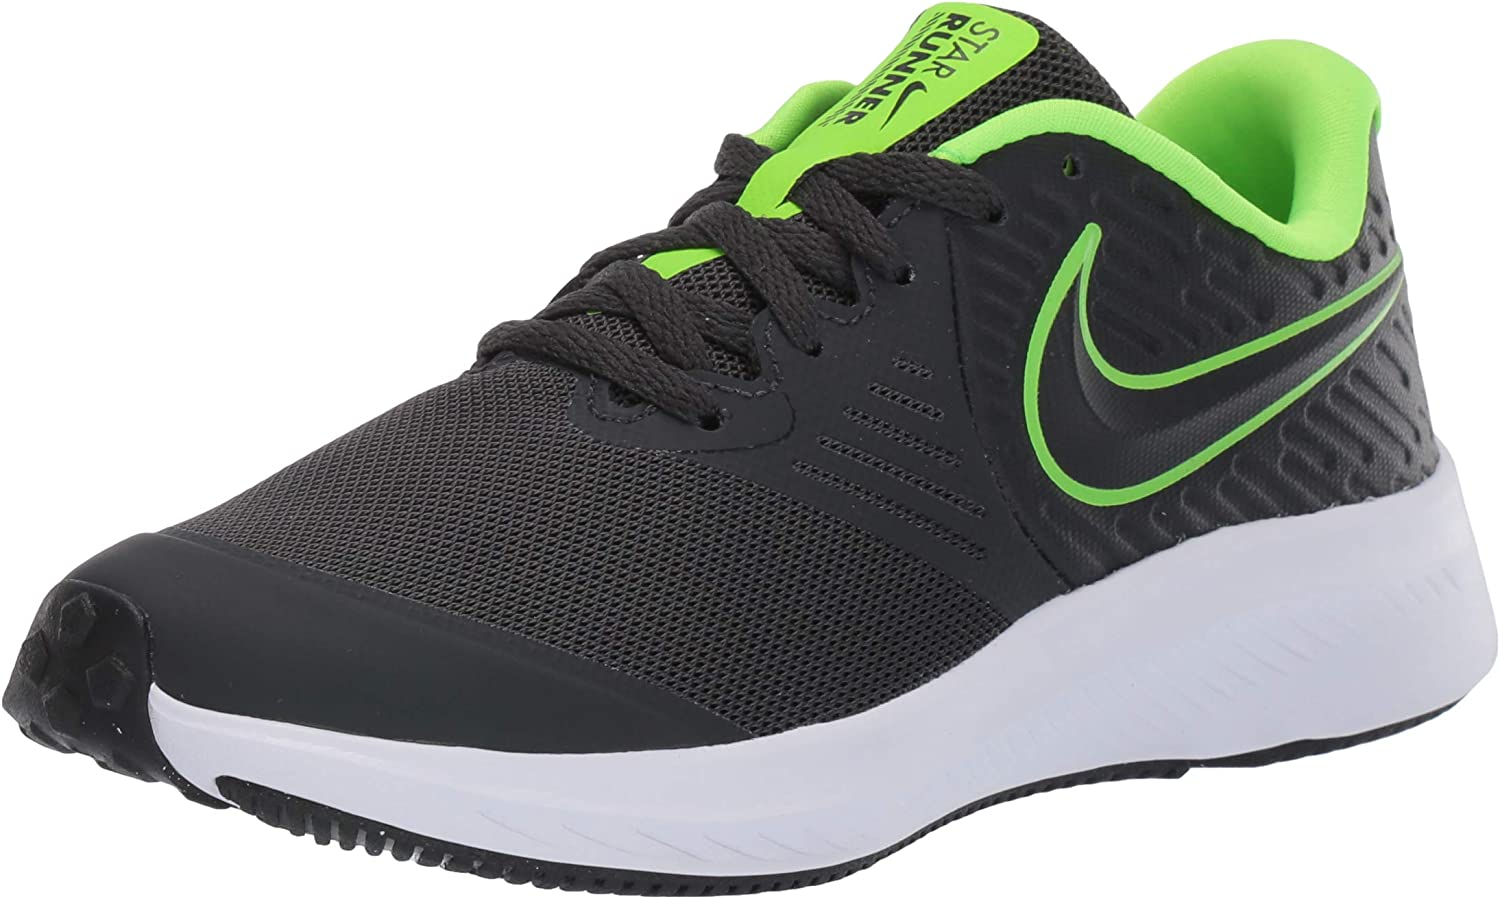 Large special price !! Free shipping New Nike Unisex-Child Star Runner GS Sneaker 2